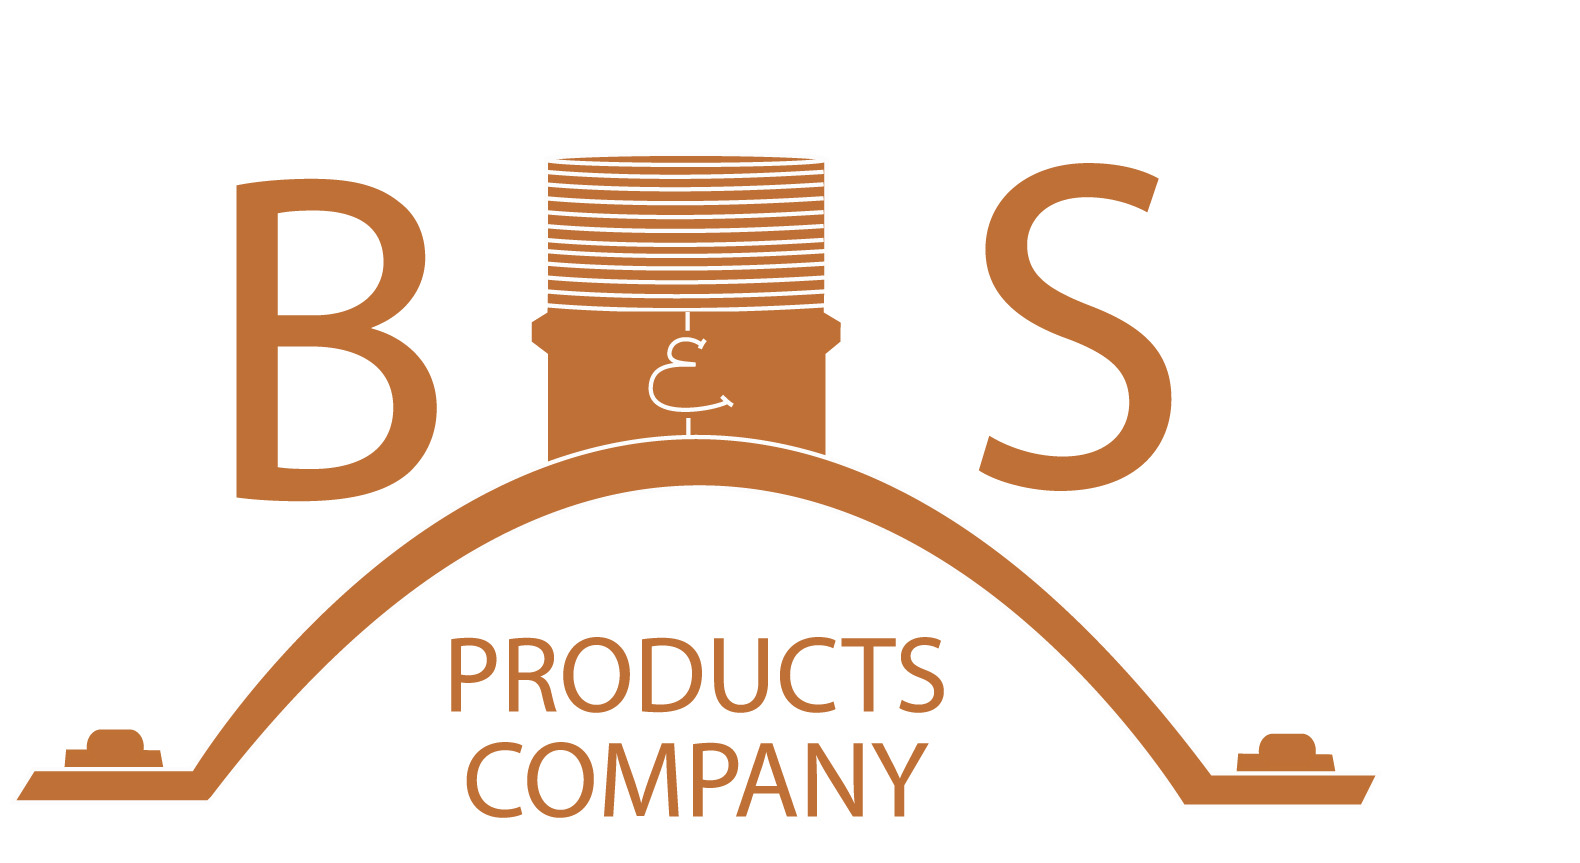 B & S Products Co